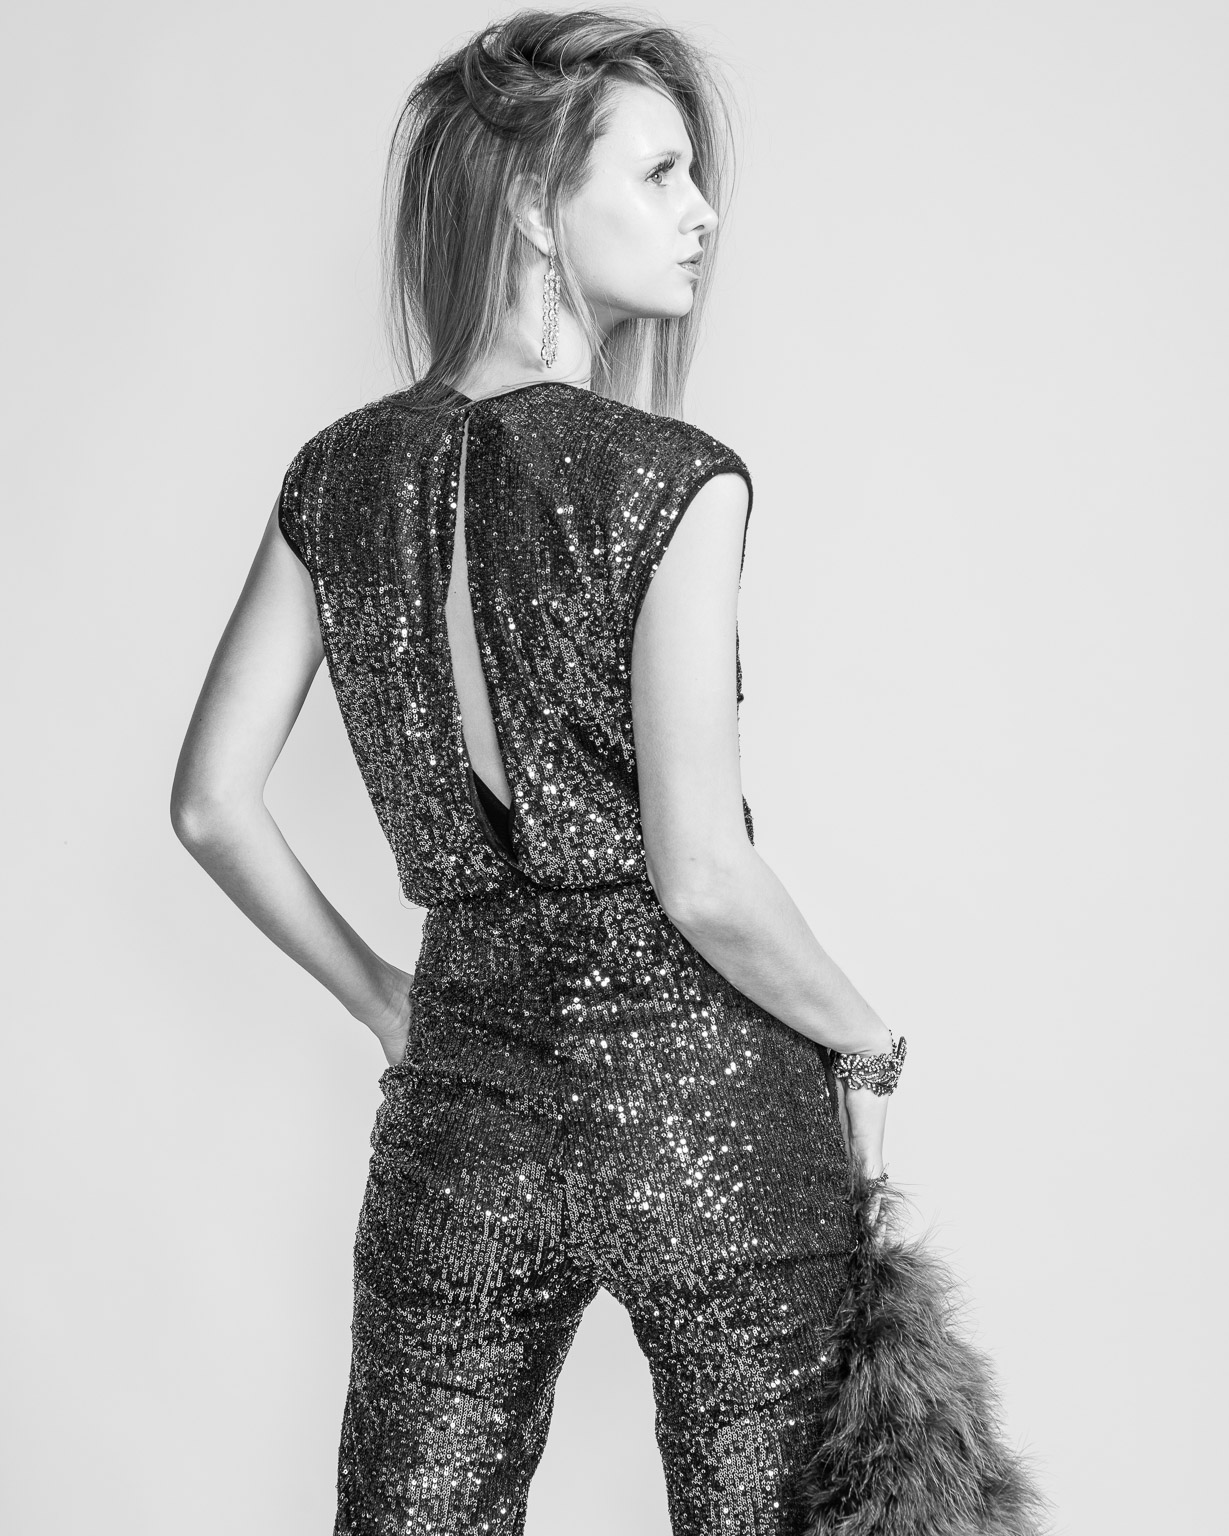 Fashion photography of young woman in stylish sequined jumpsuit standing in fashion pose.